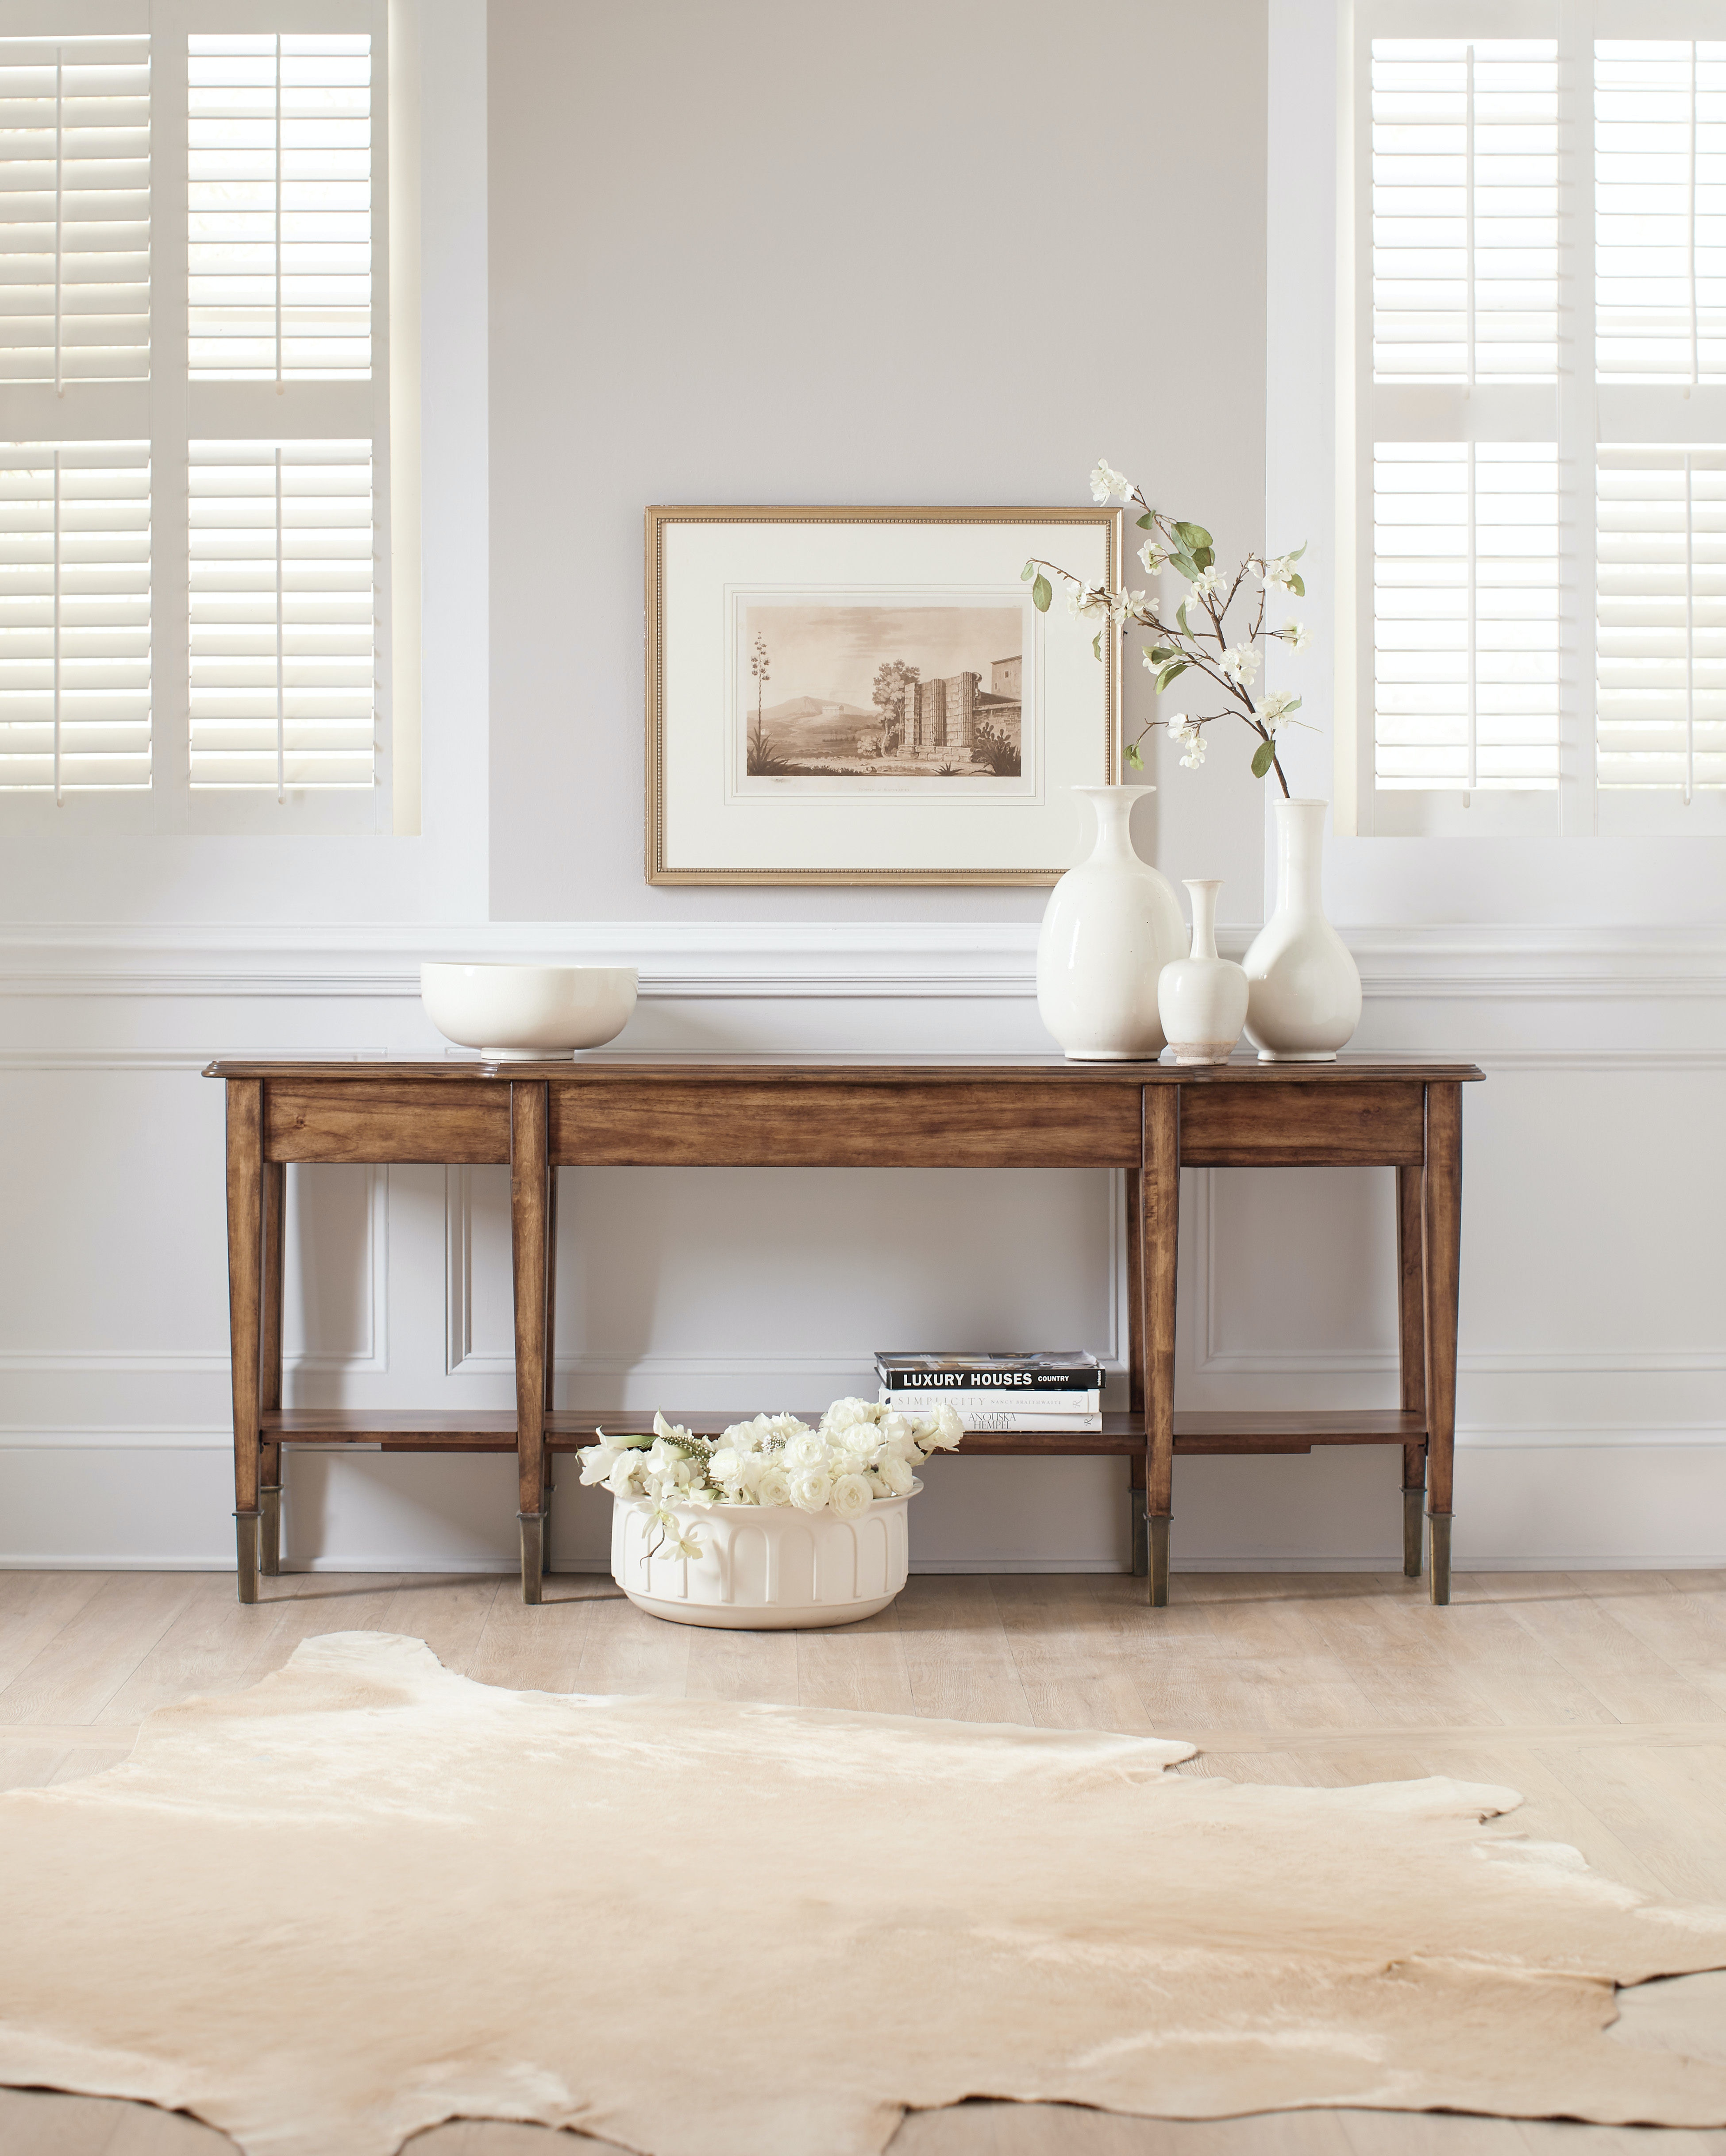 hooker furniture skinny console table - Skinny Console Table